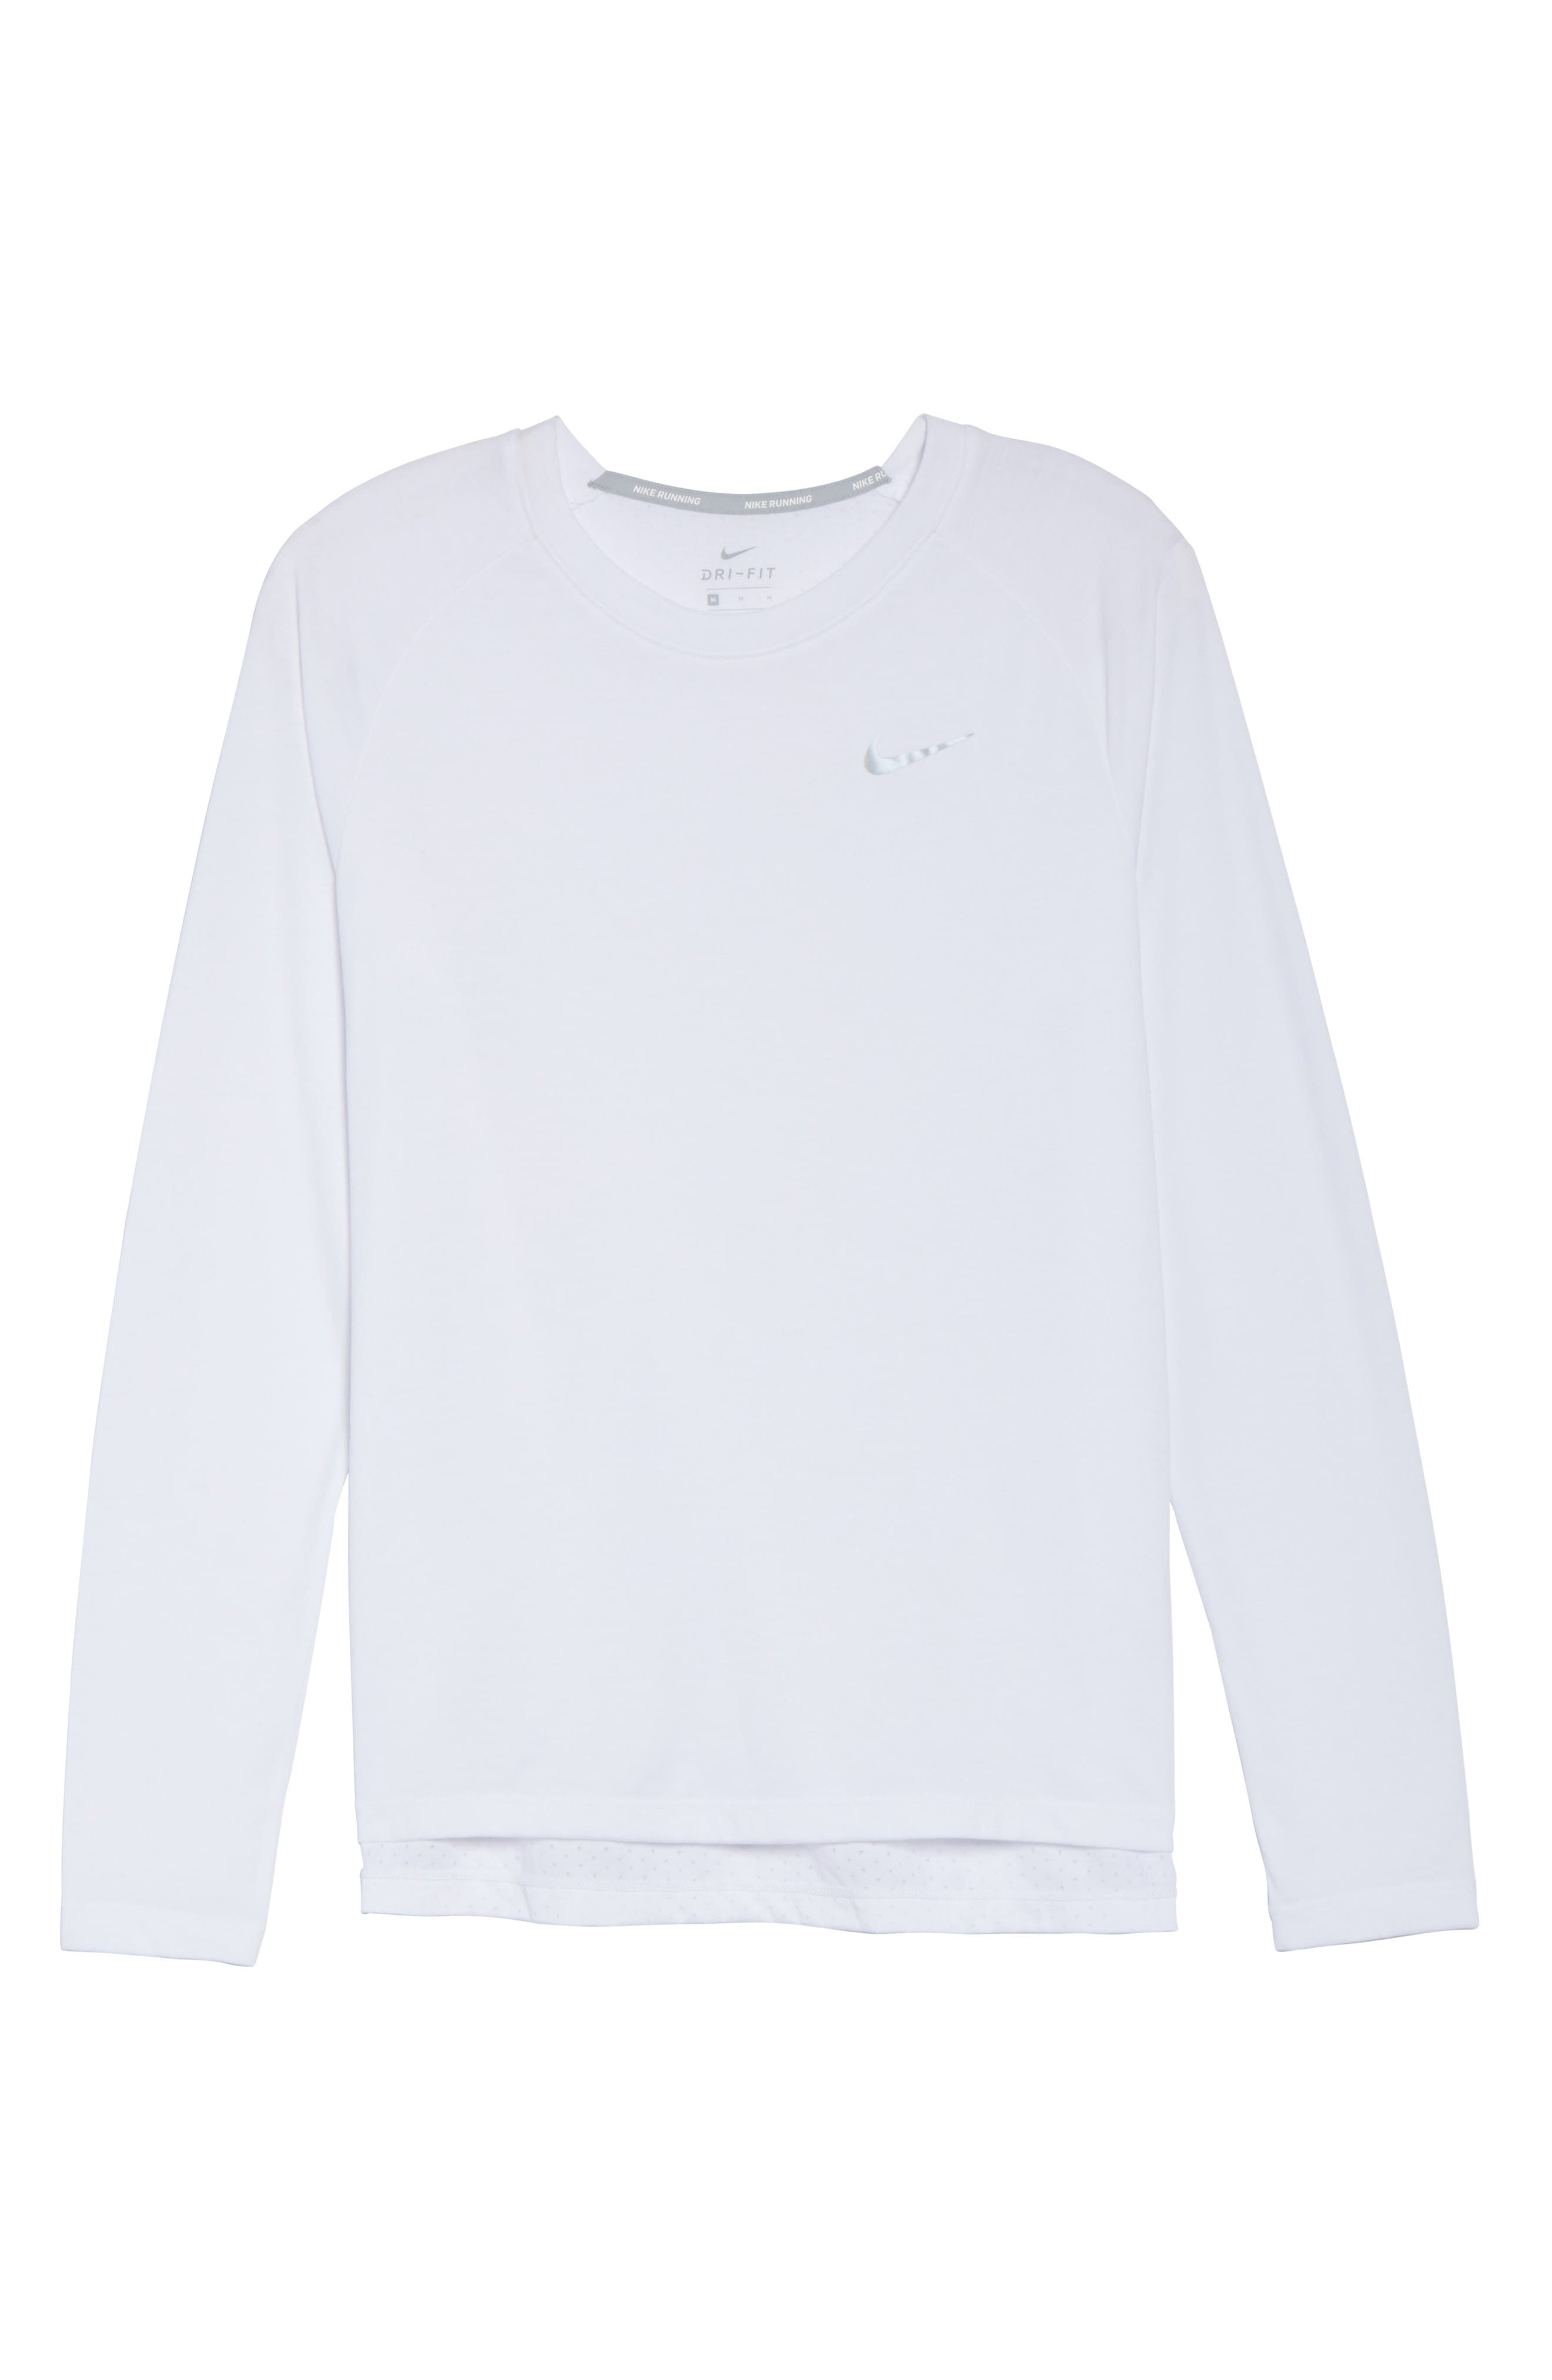 Breathe Tailwind Running Top,                             Alternate thumbnail 7, color,                             White